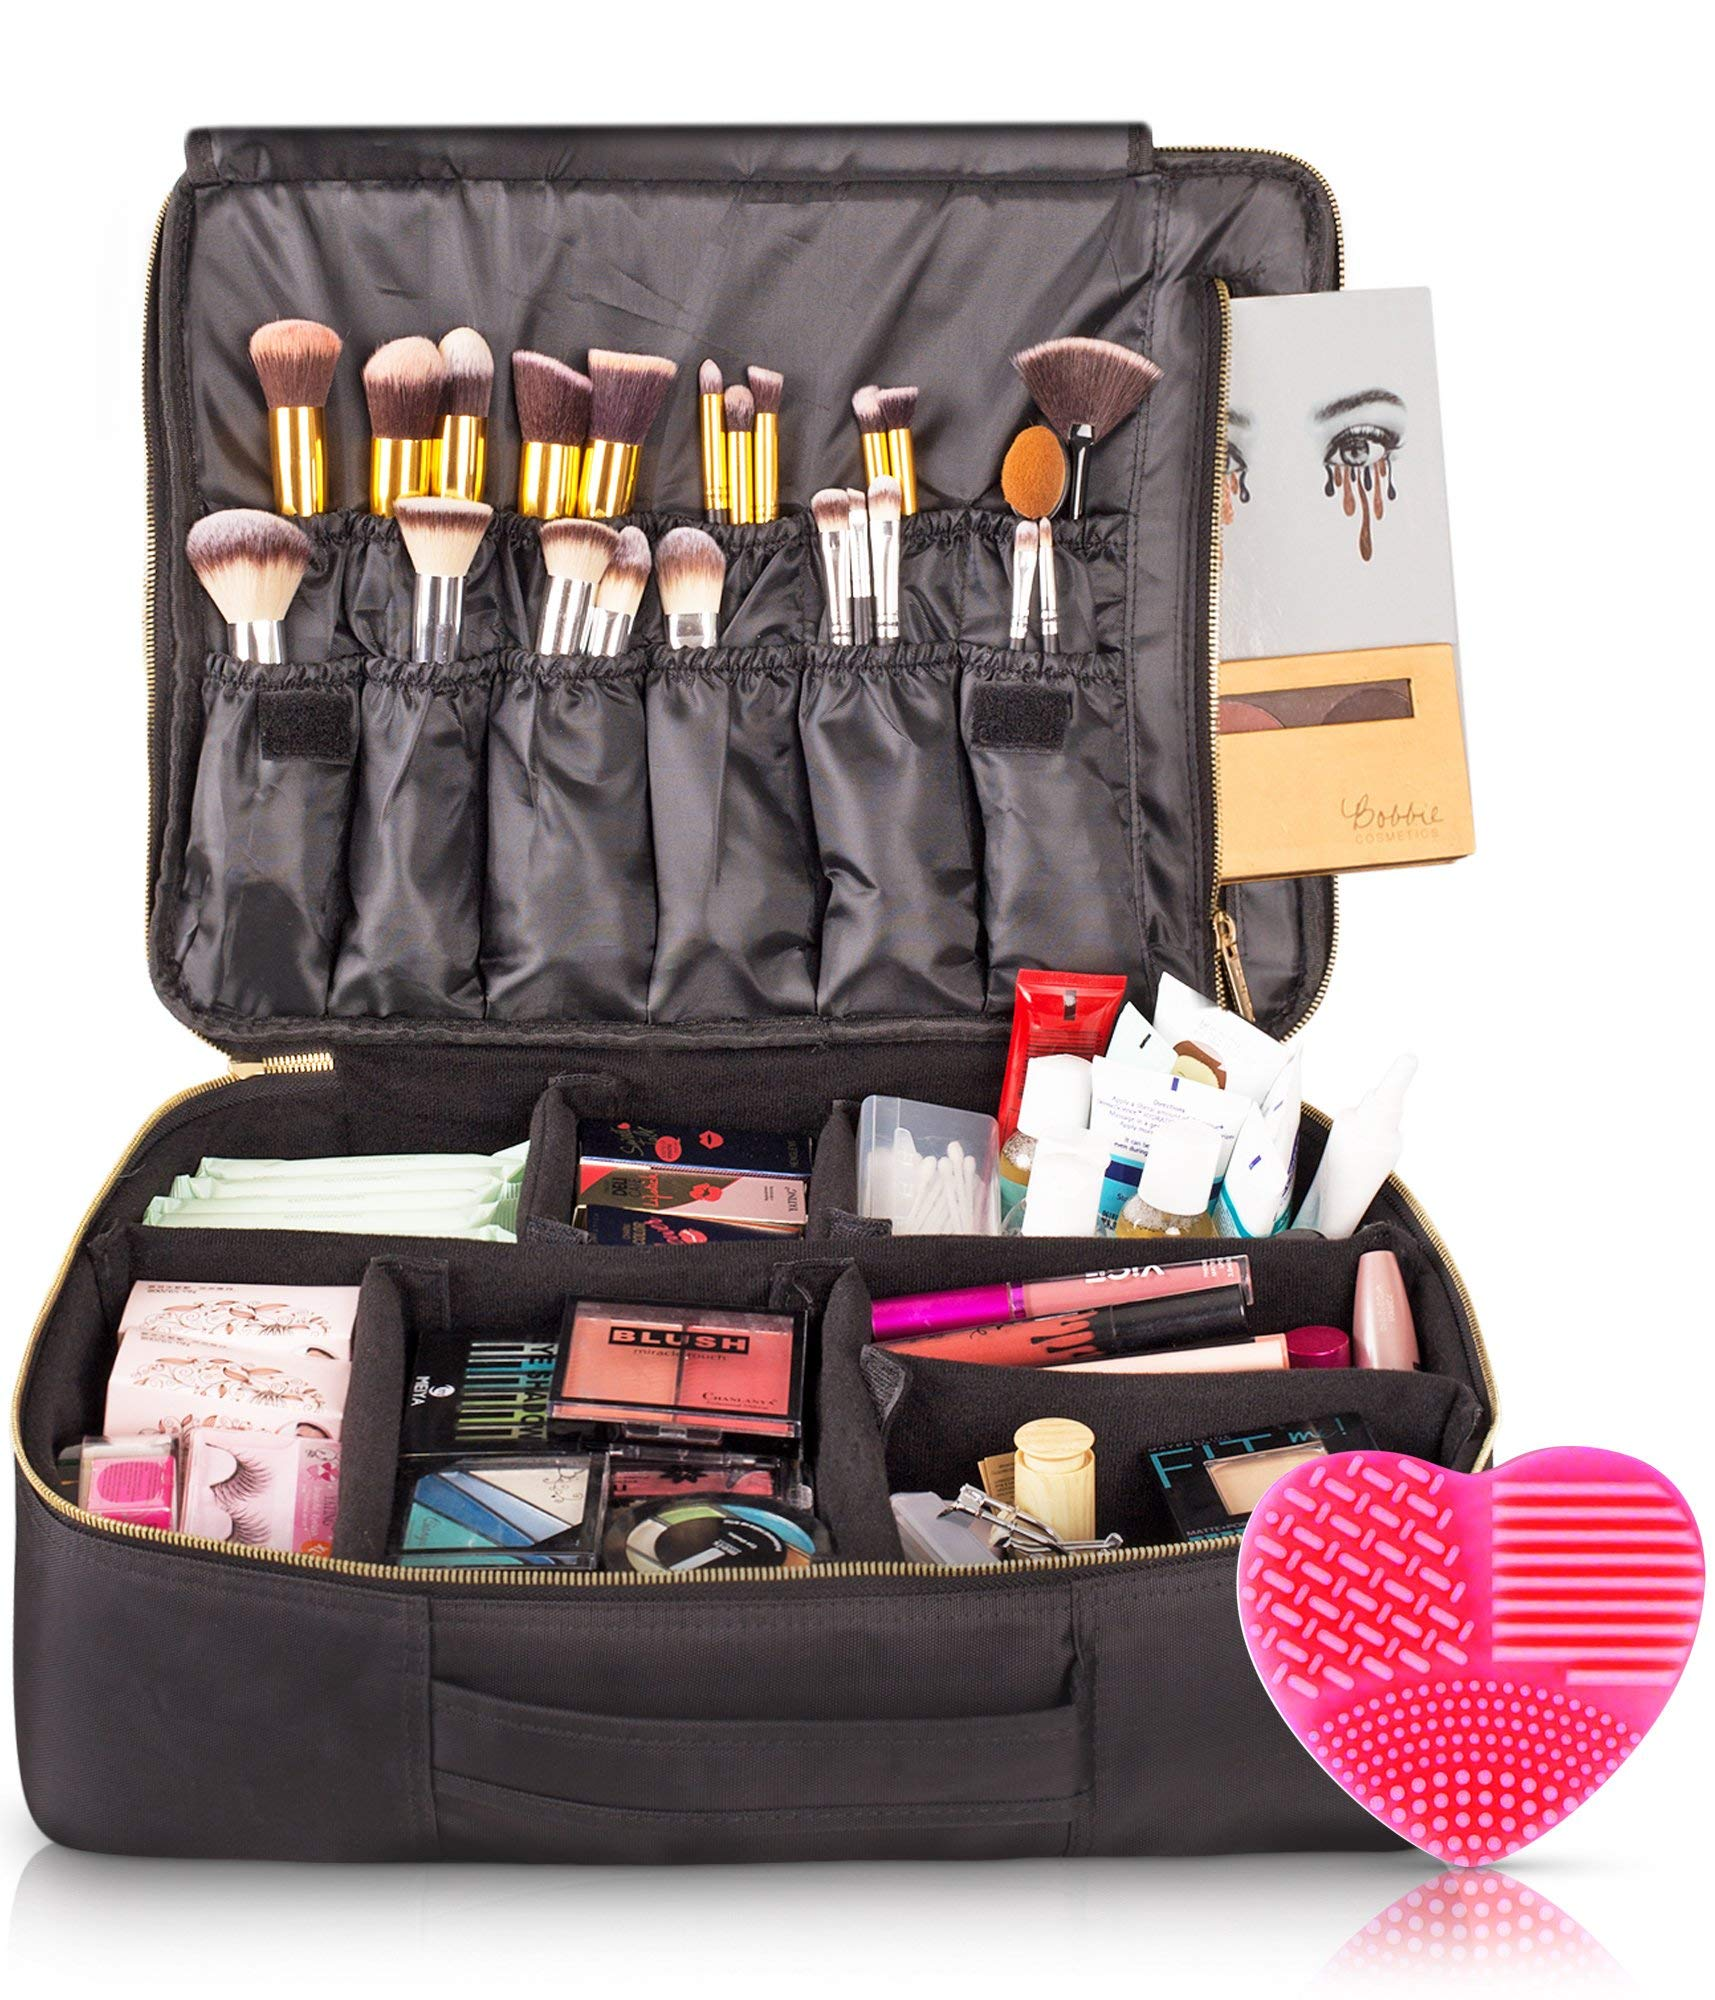 habe Travel Makeup Bag with Mirror Premium Vegan Designer Make Up Bag Organizer Train Case for Women – More Storage than 3 Cosmetic Bags, Make Up Bags or Make Up Cases (BONUS Brush Cleaner) Pink